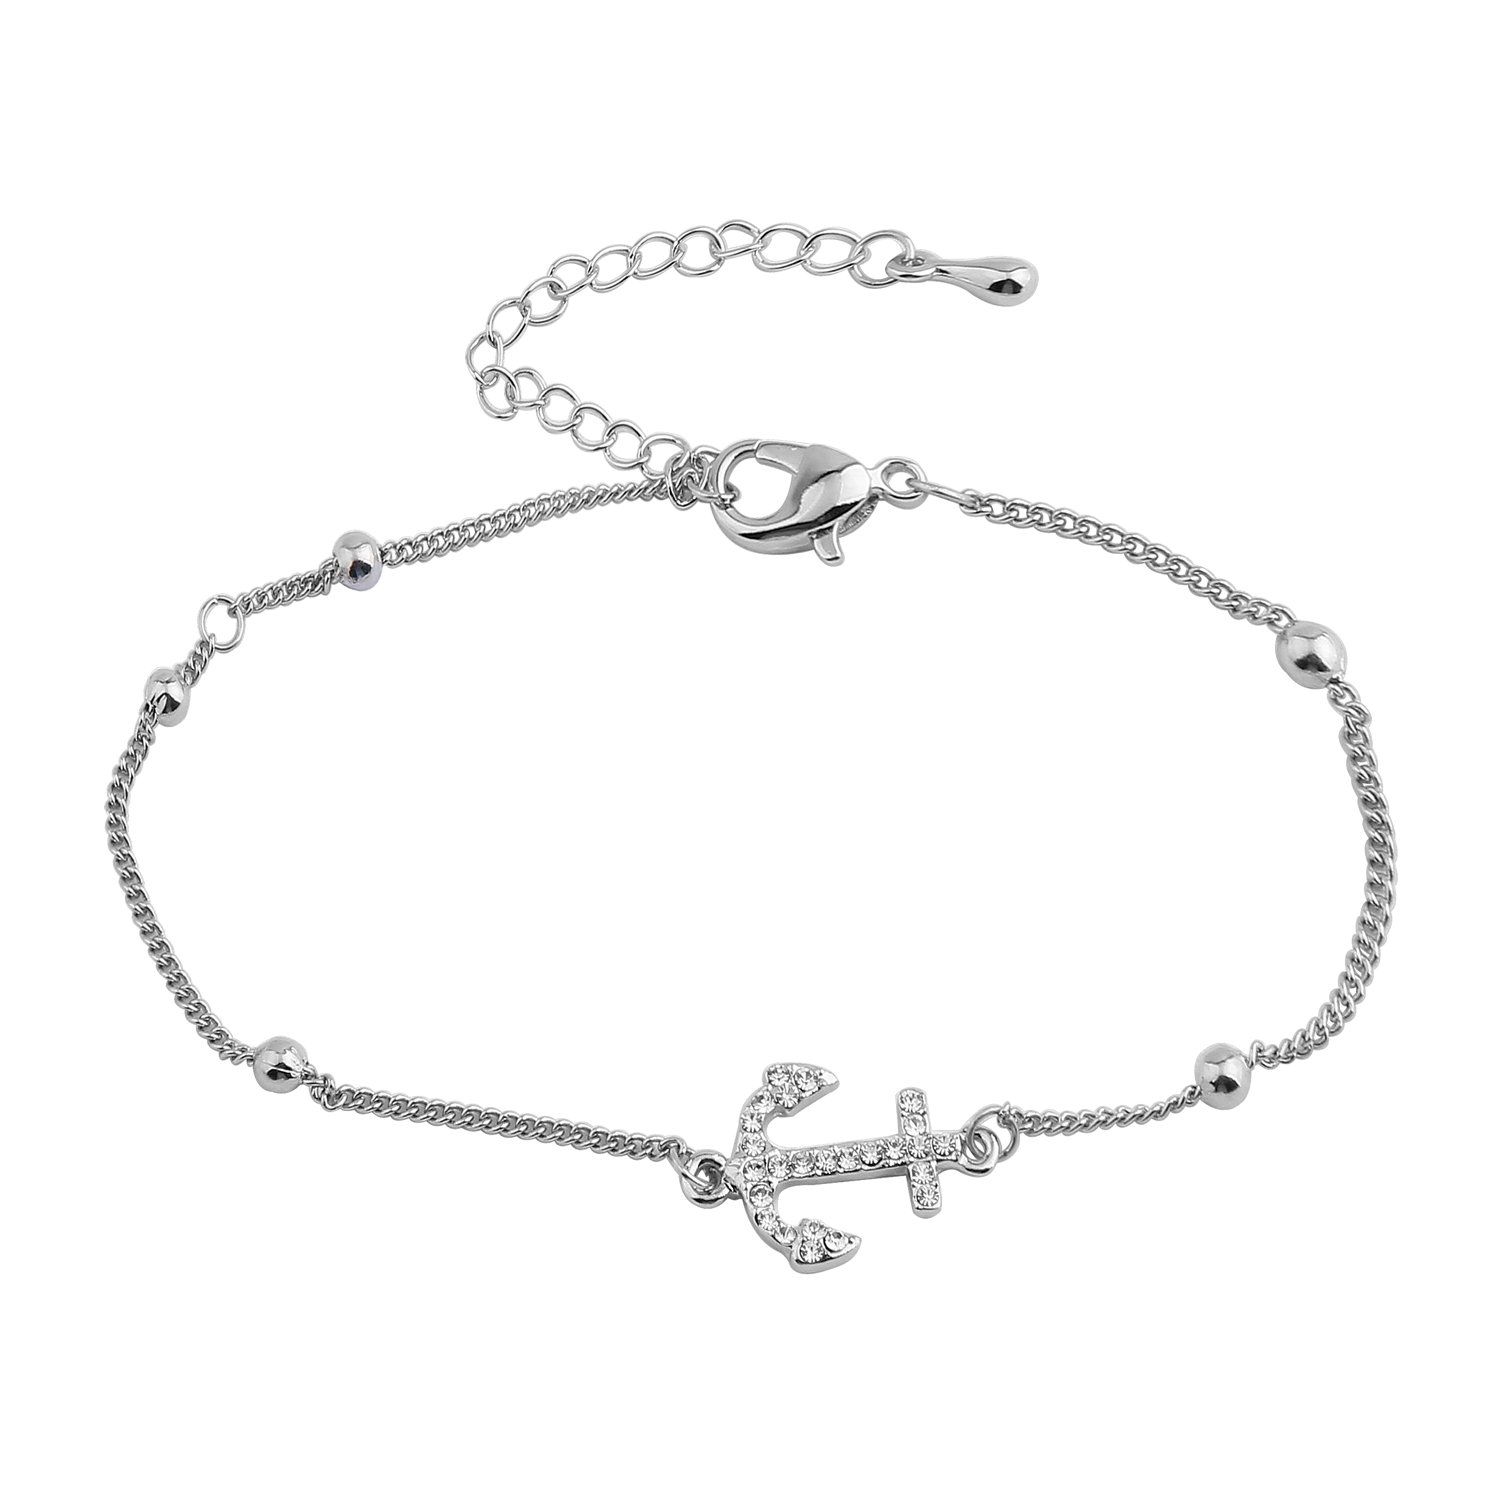 WUSUANED Nautical Anchor Charm Adjustable Anklet Bracelet Ocean Beach Jewelry (anchor anklet)